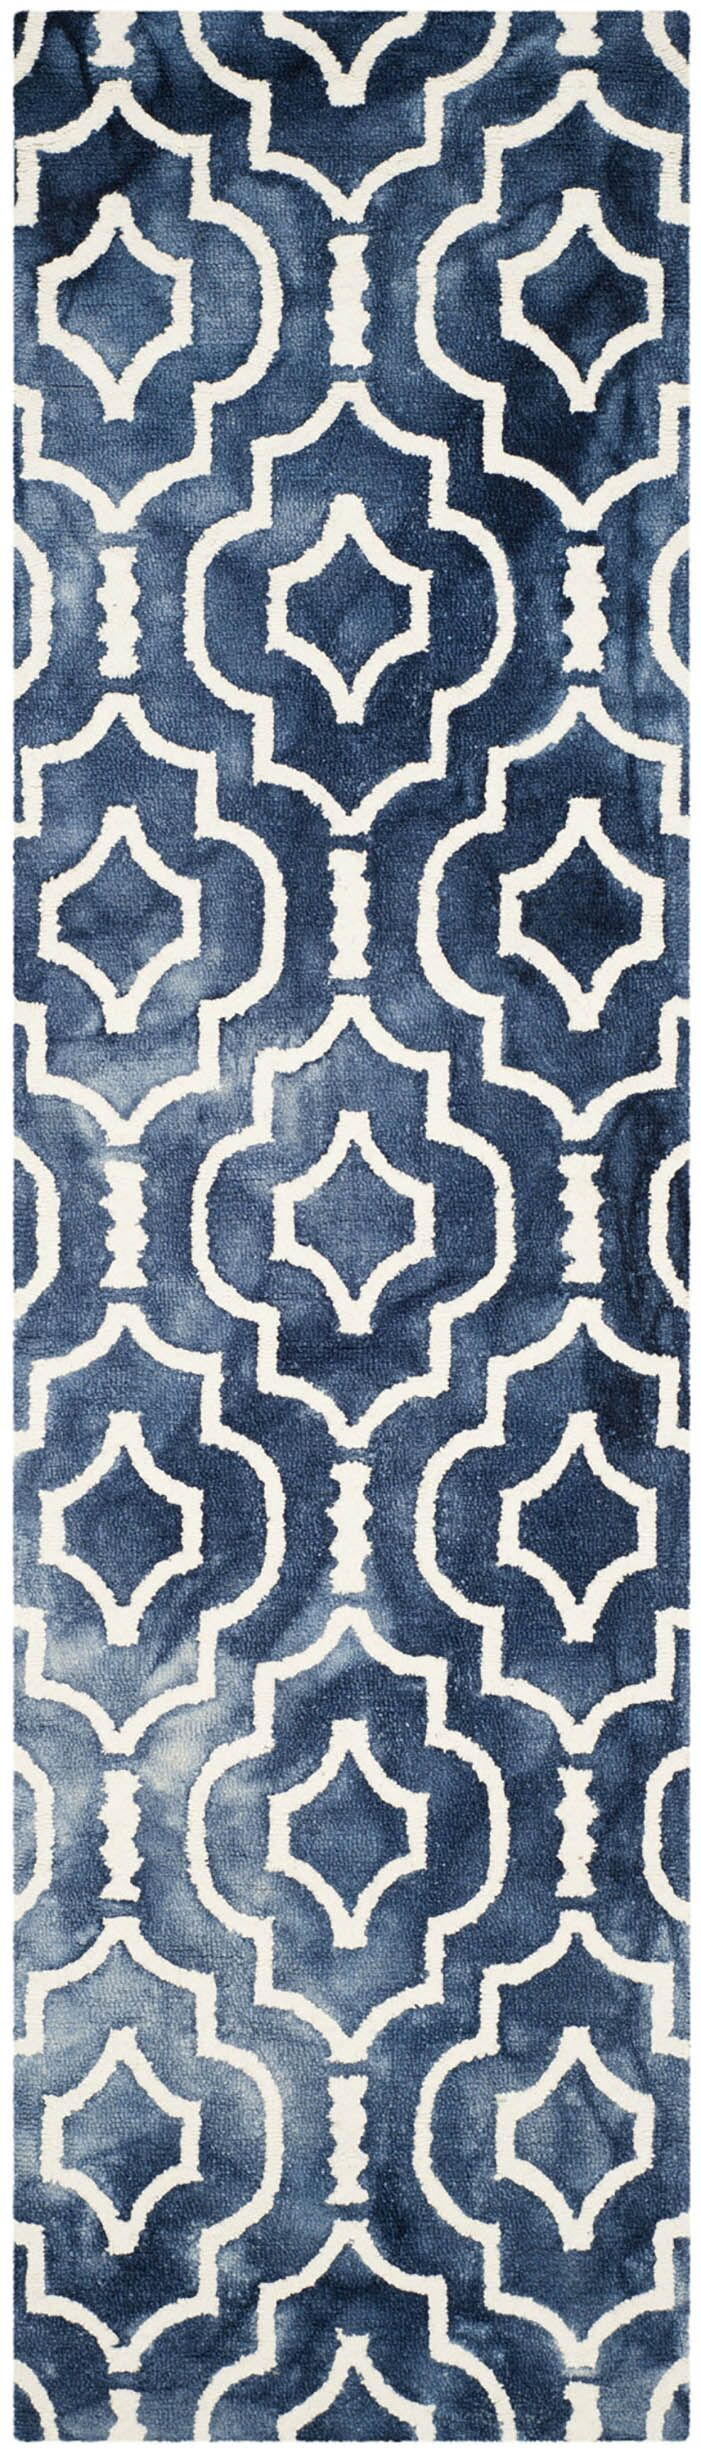 Berman Hand-Tufted Navy/Ivory Area Rug Rug Size: Runner 2'3